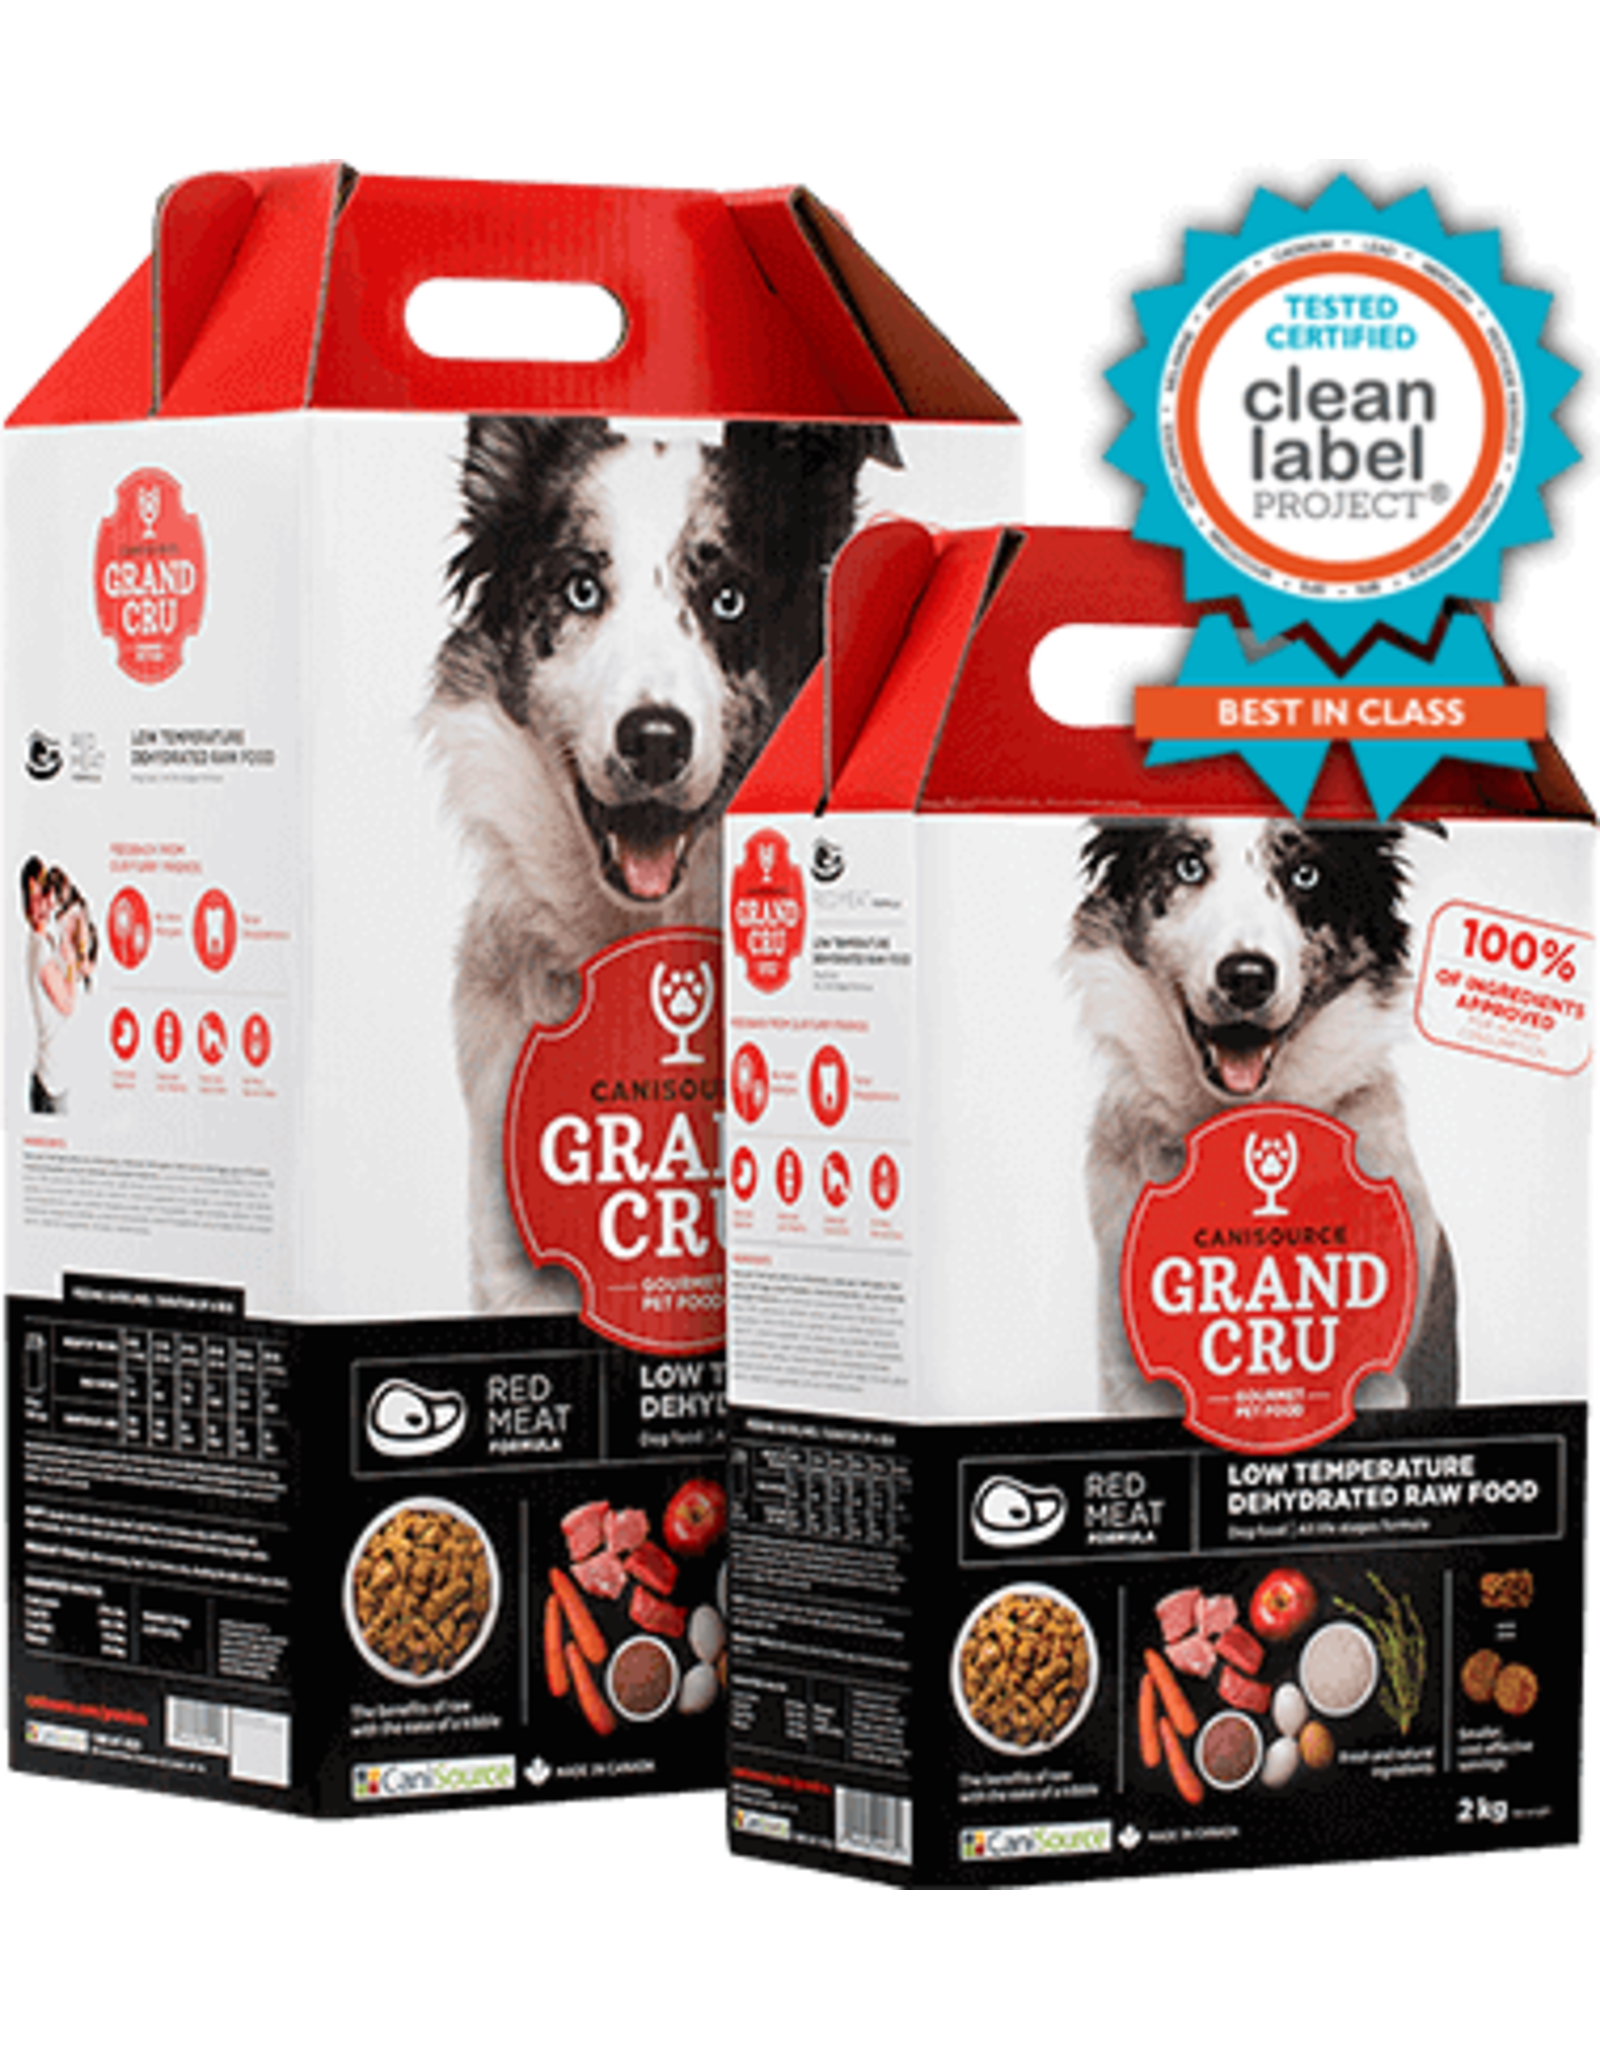 Canisource Canisource DOG GrandCru Red Meat 2kg